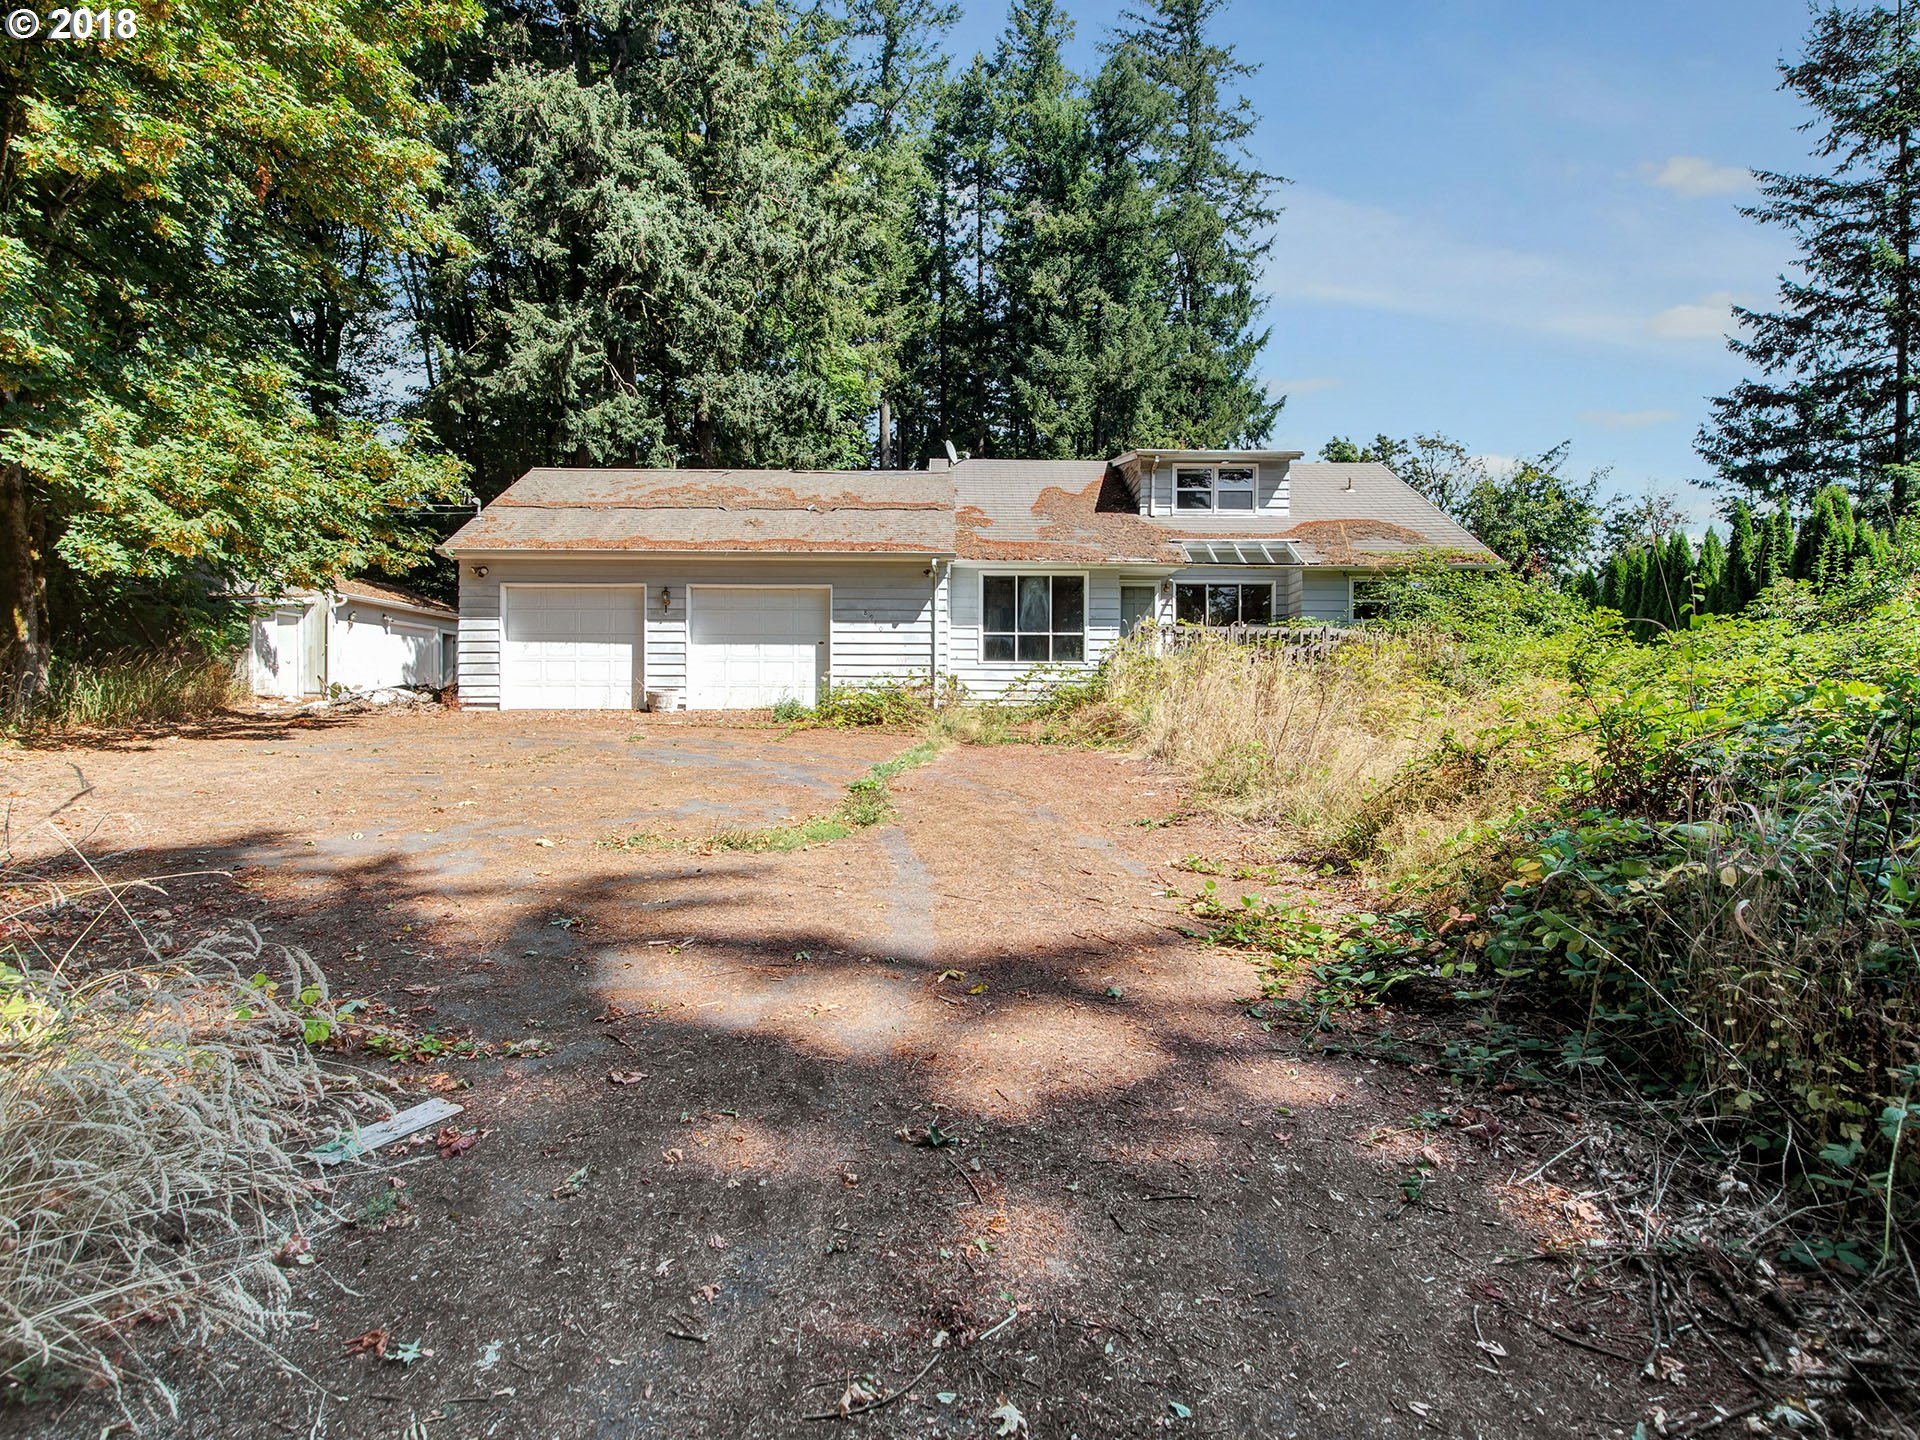 2688 sq. ft 5 bedrooms 2 bathrooms  House , Portland, OR